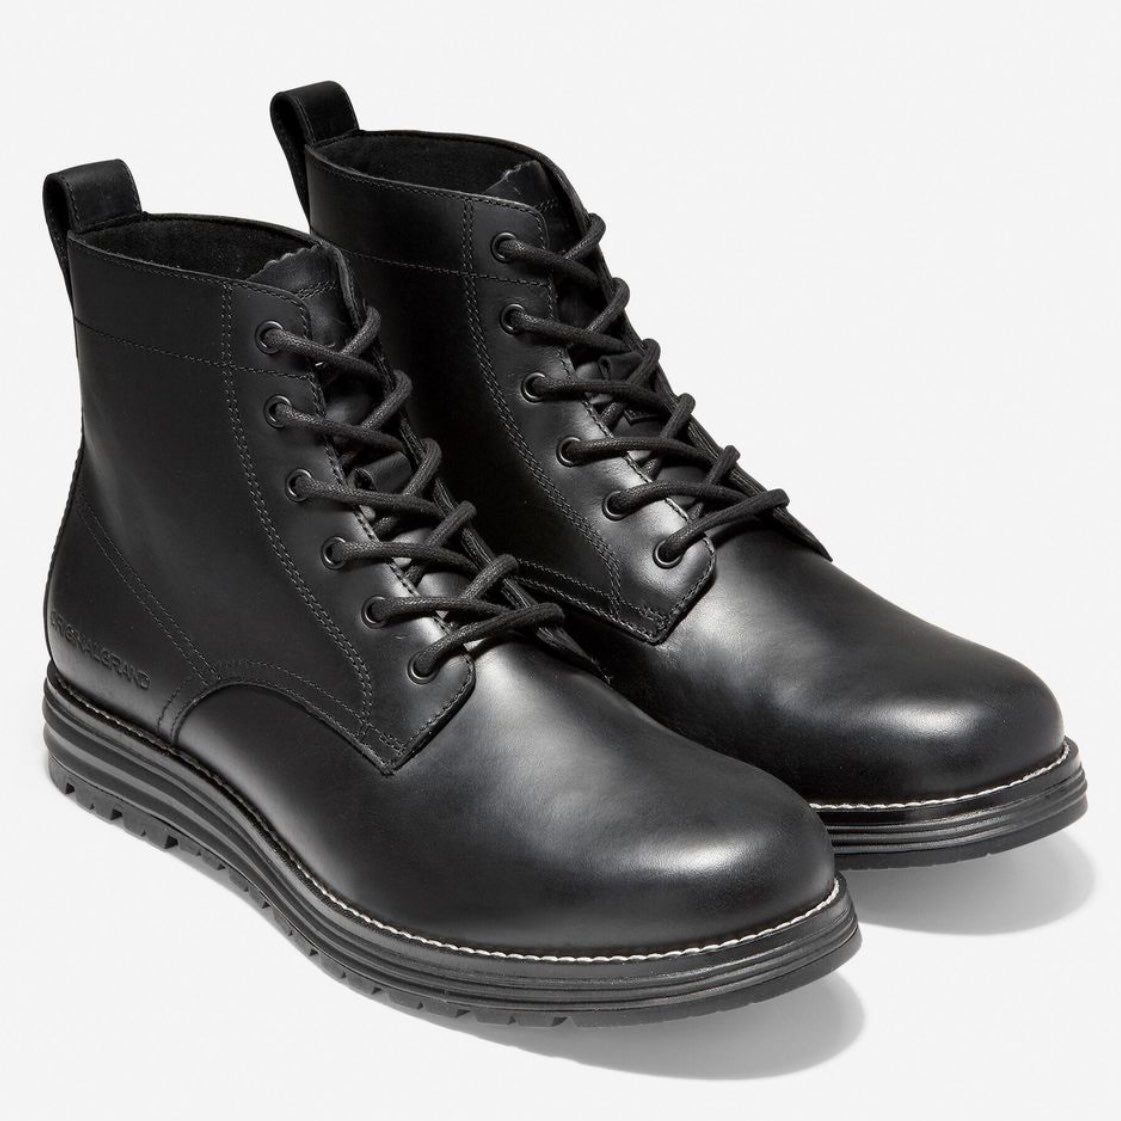 Cole Haan Original Grand Black Boots